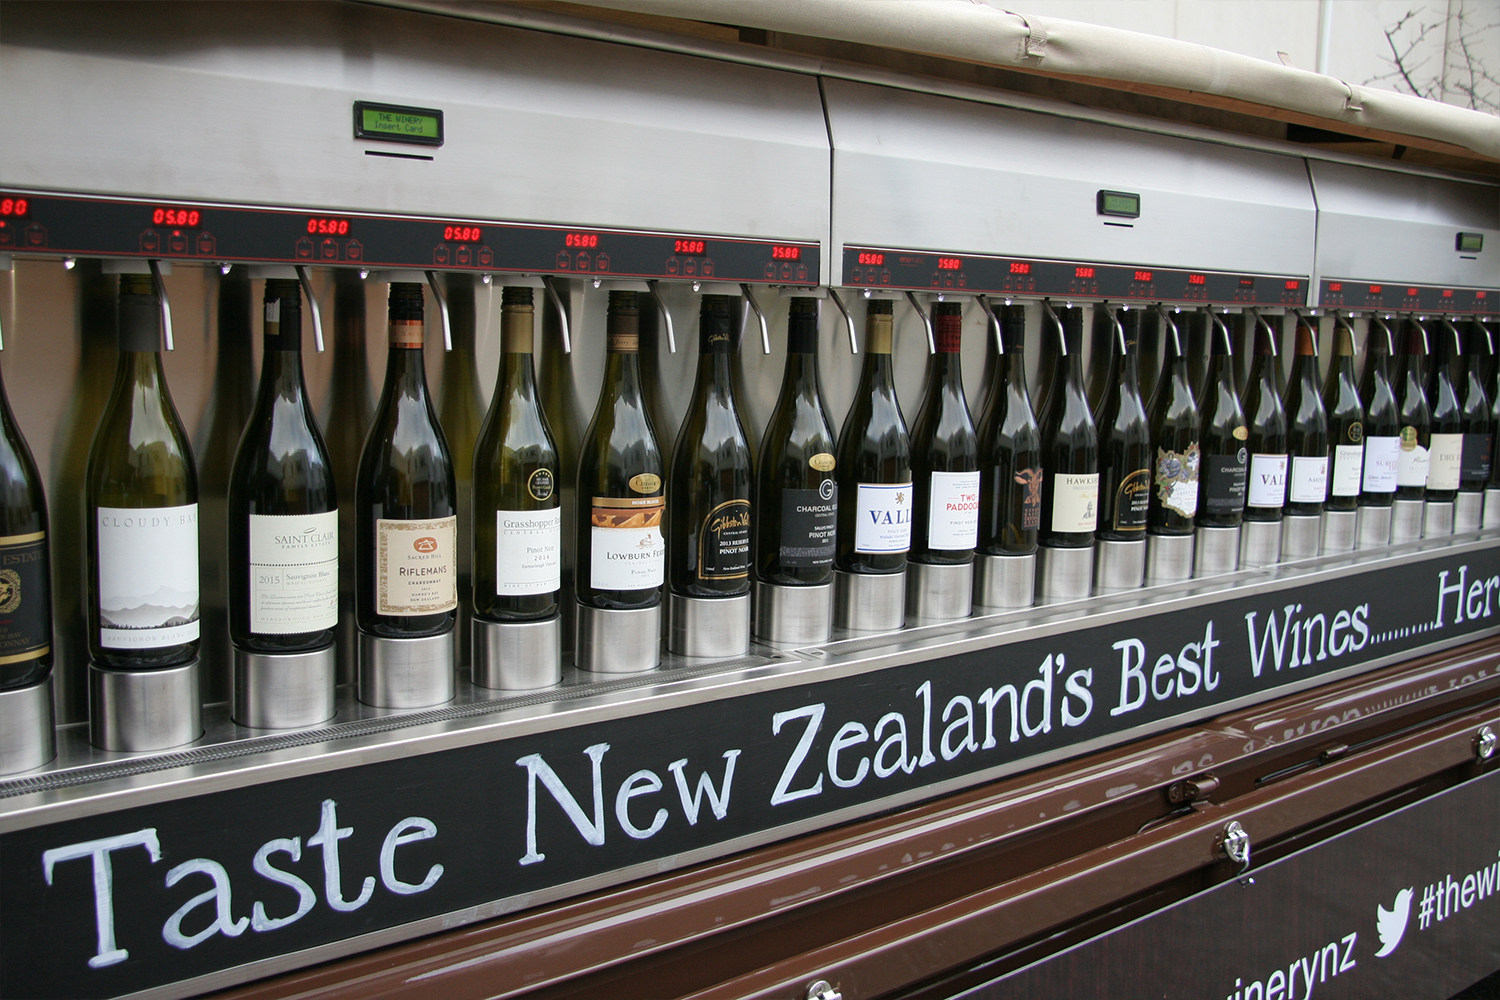 46 wines for tasting